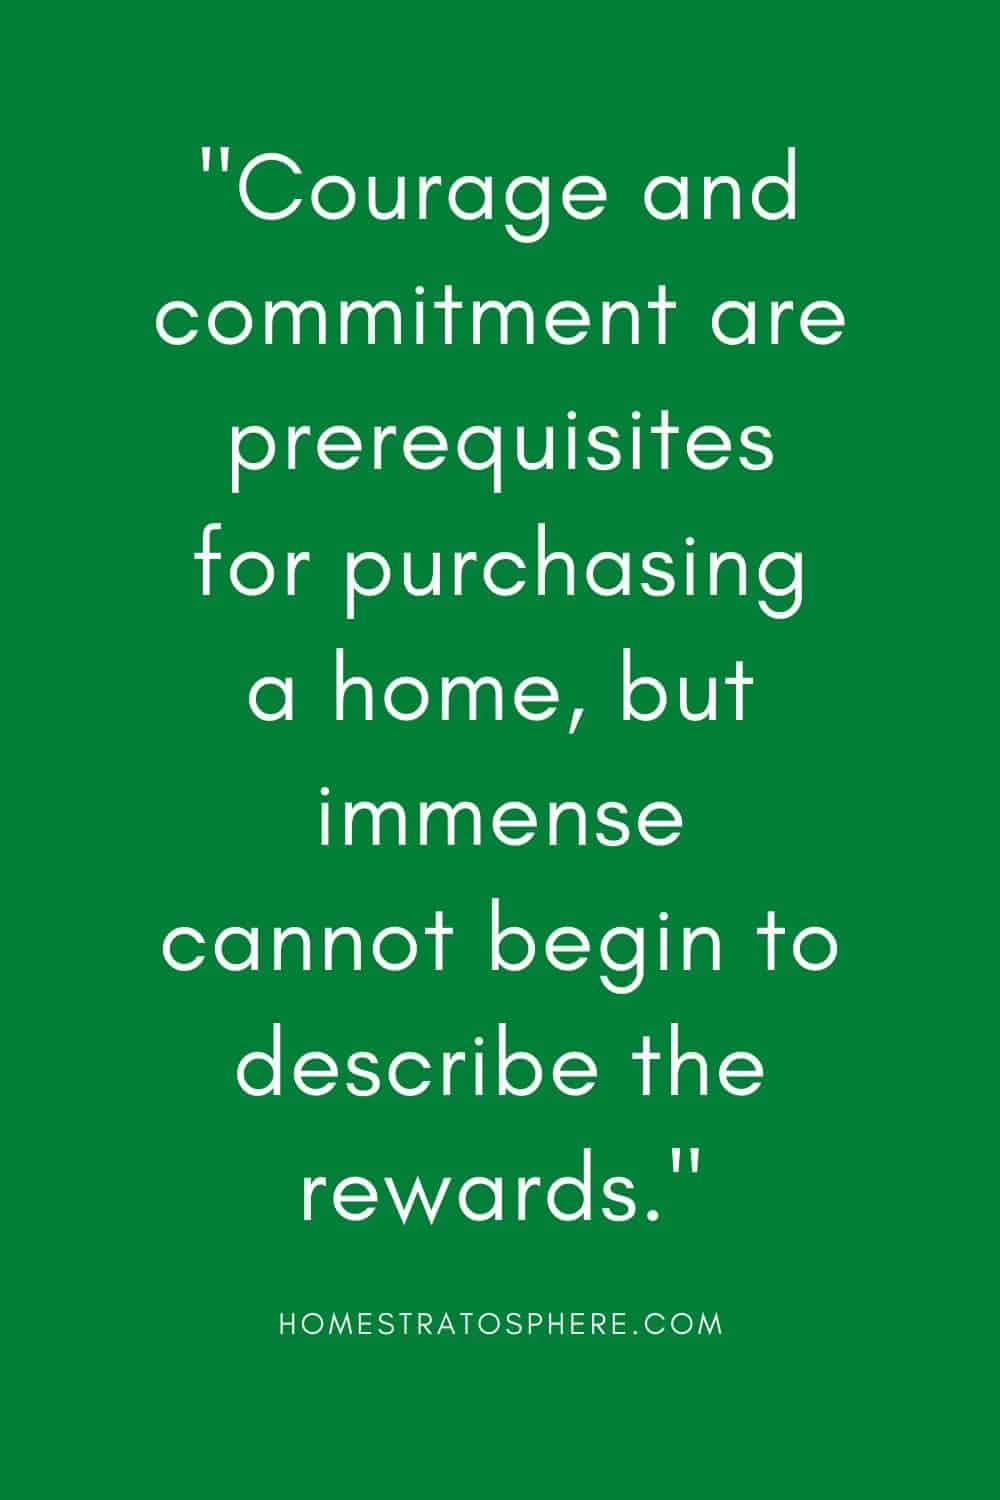 """Courage and commitment are prerequisites for purchasing a home, but immense cannot begin to describe the rewards."""